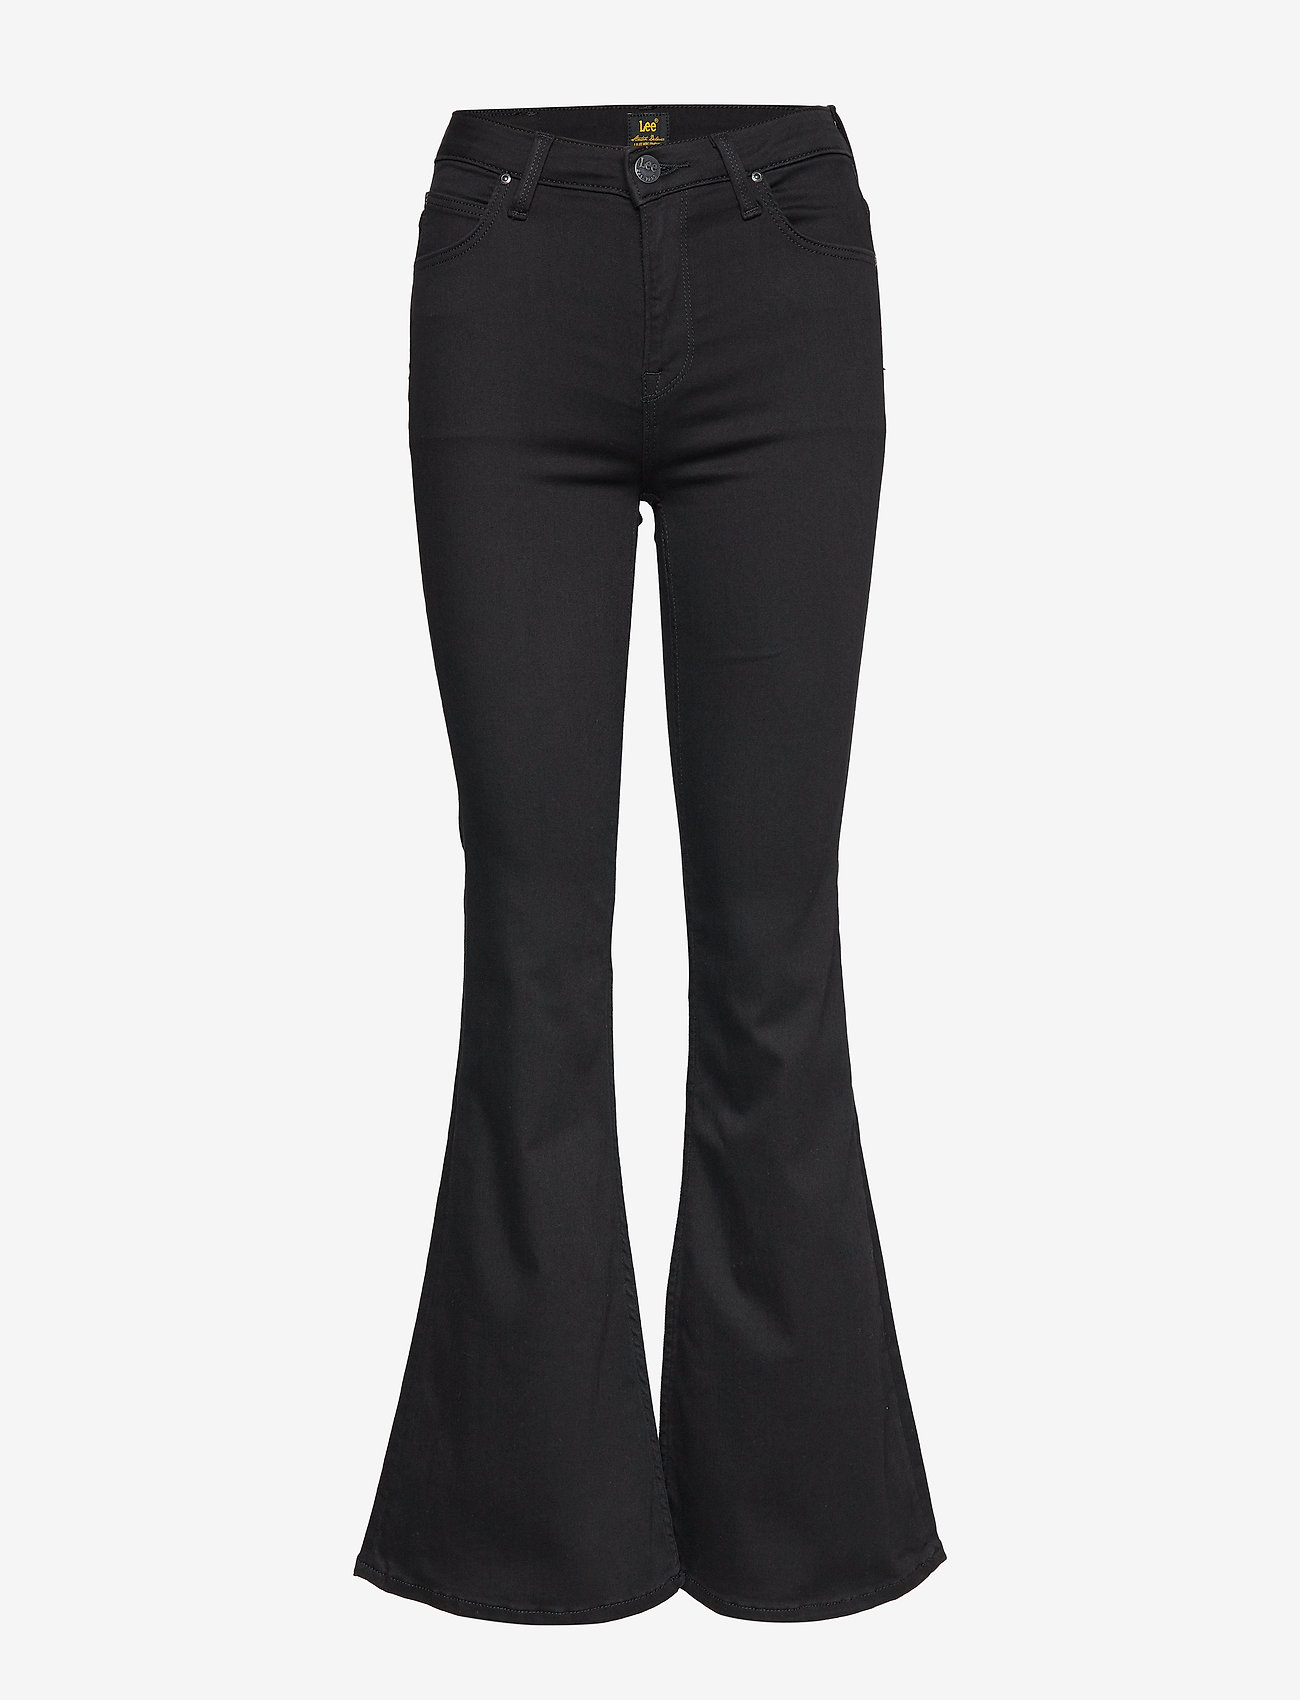 Lee Jeans - BREESE - schlaghosen - black rinse - 0